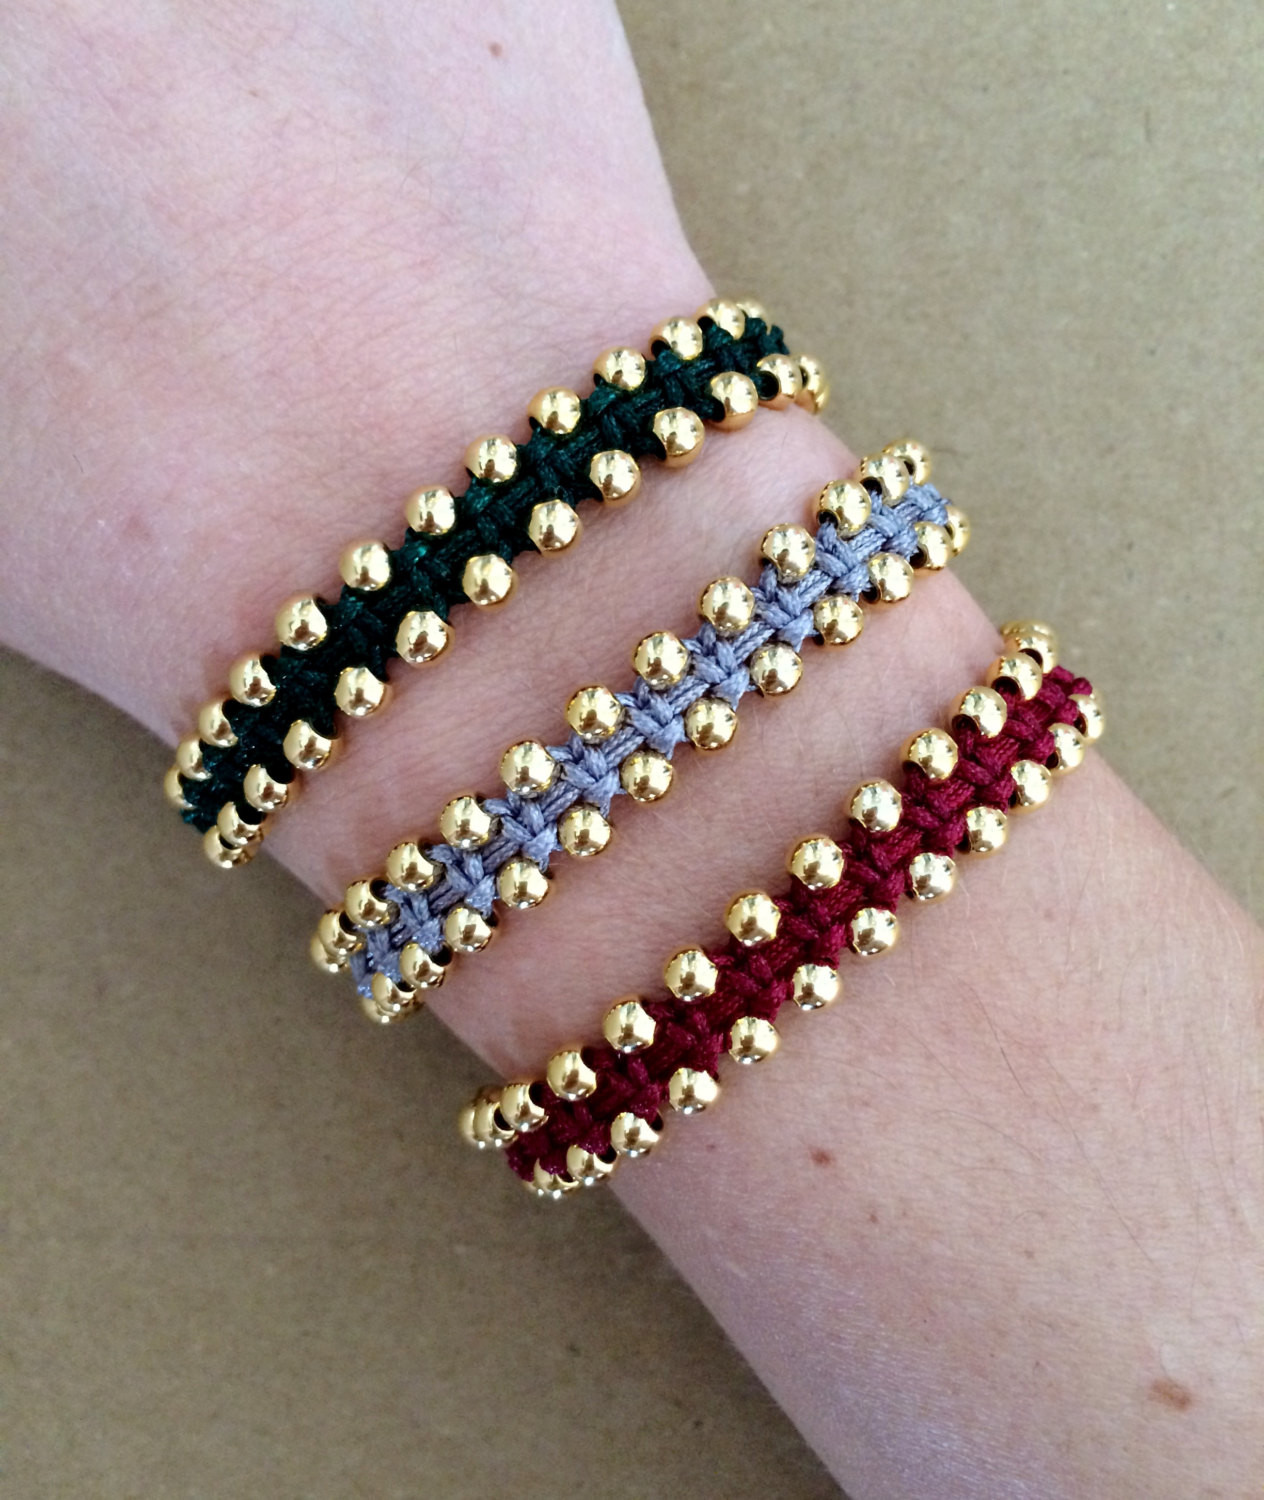 Friendship Bracelets With Beads  Gold Plated Beads Macrame Bracelet Friendship Bracelet